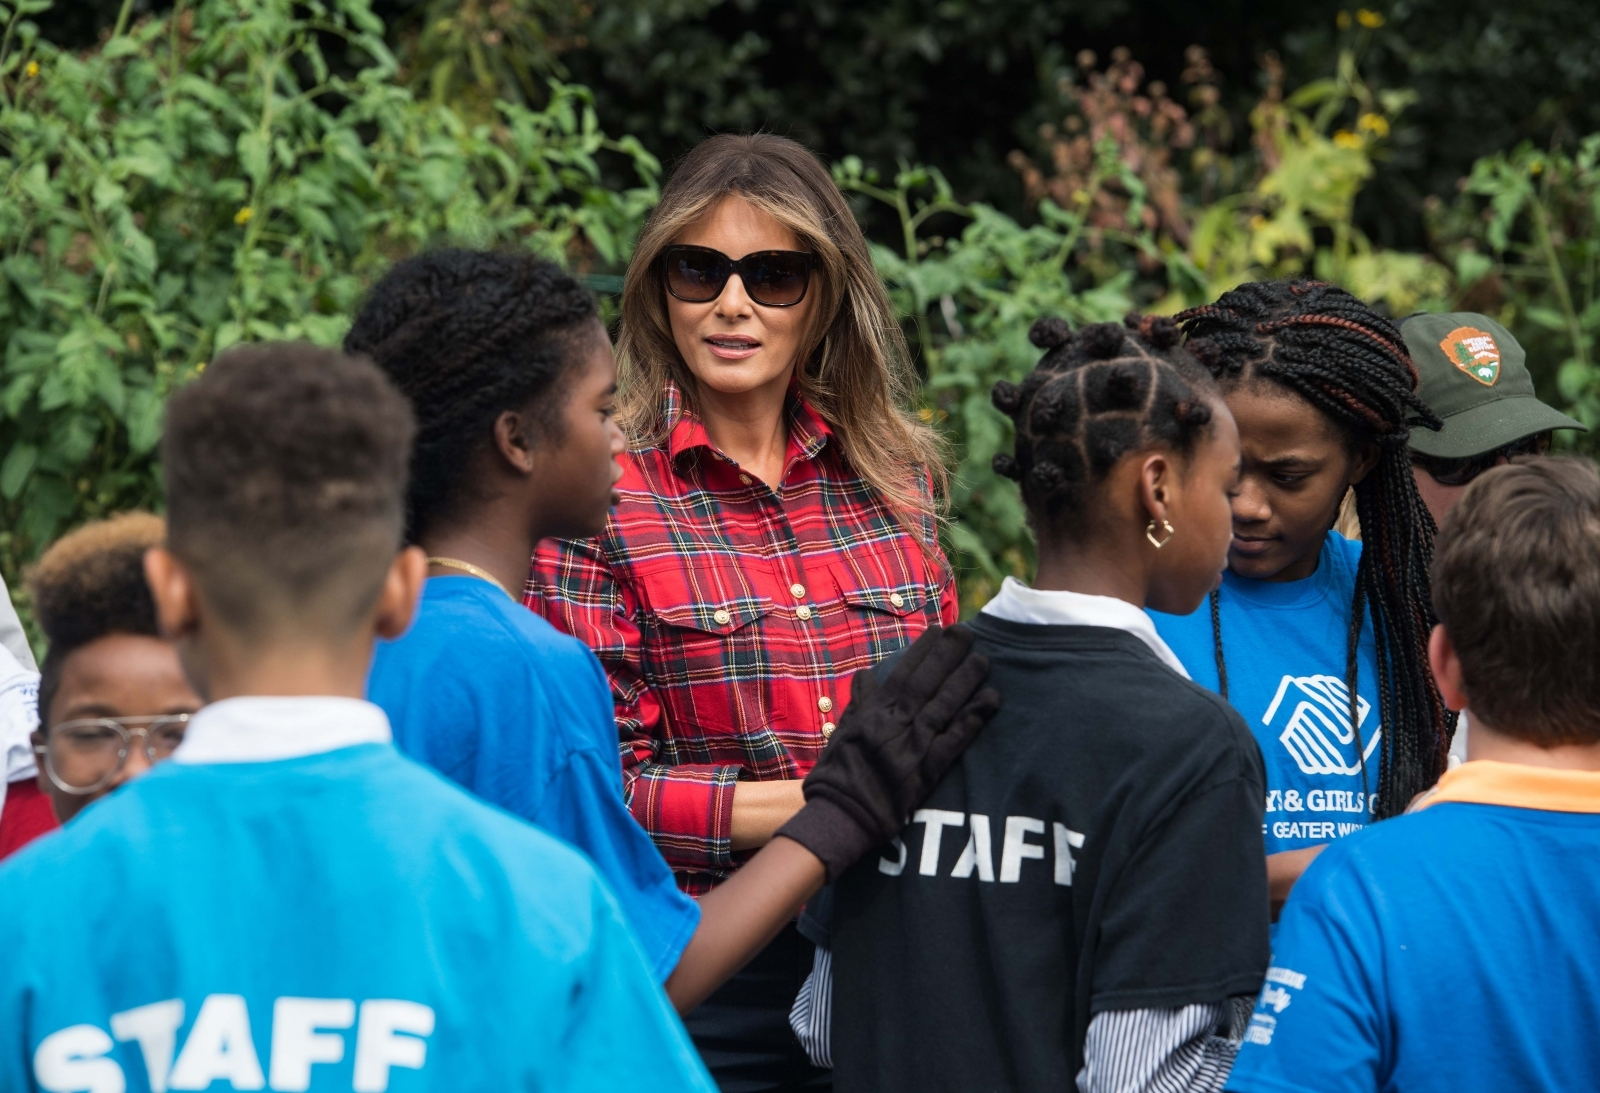 Melania Trump encourages United States athletes at games